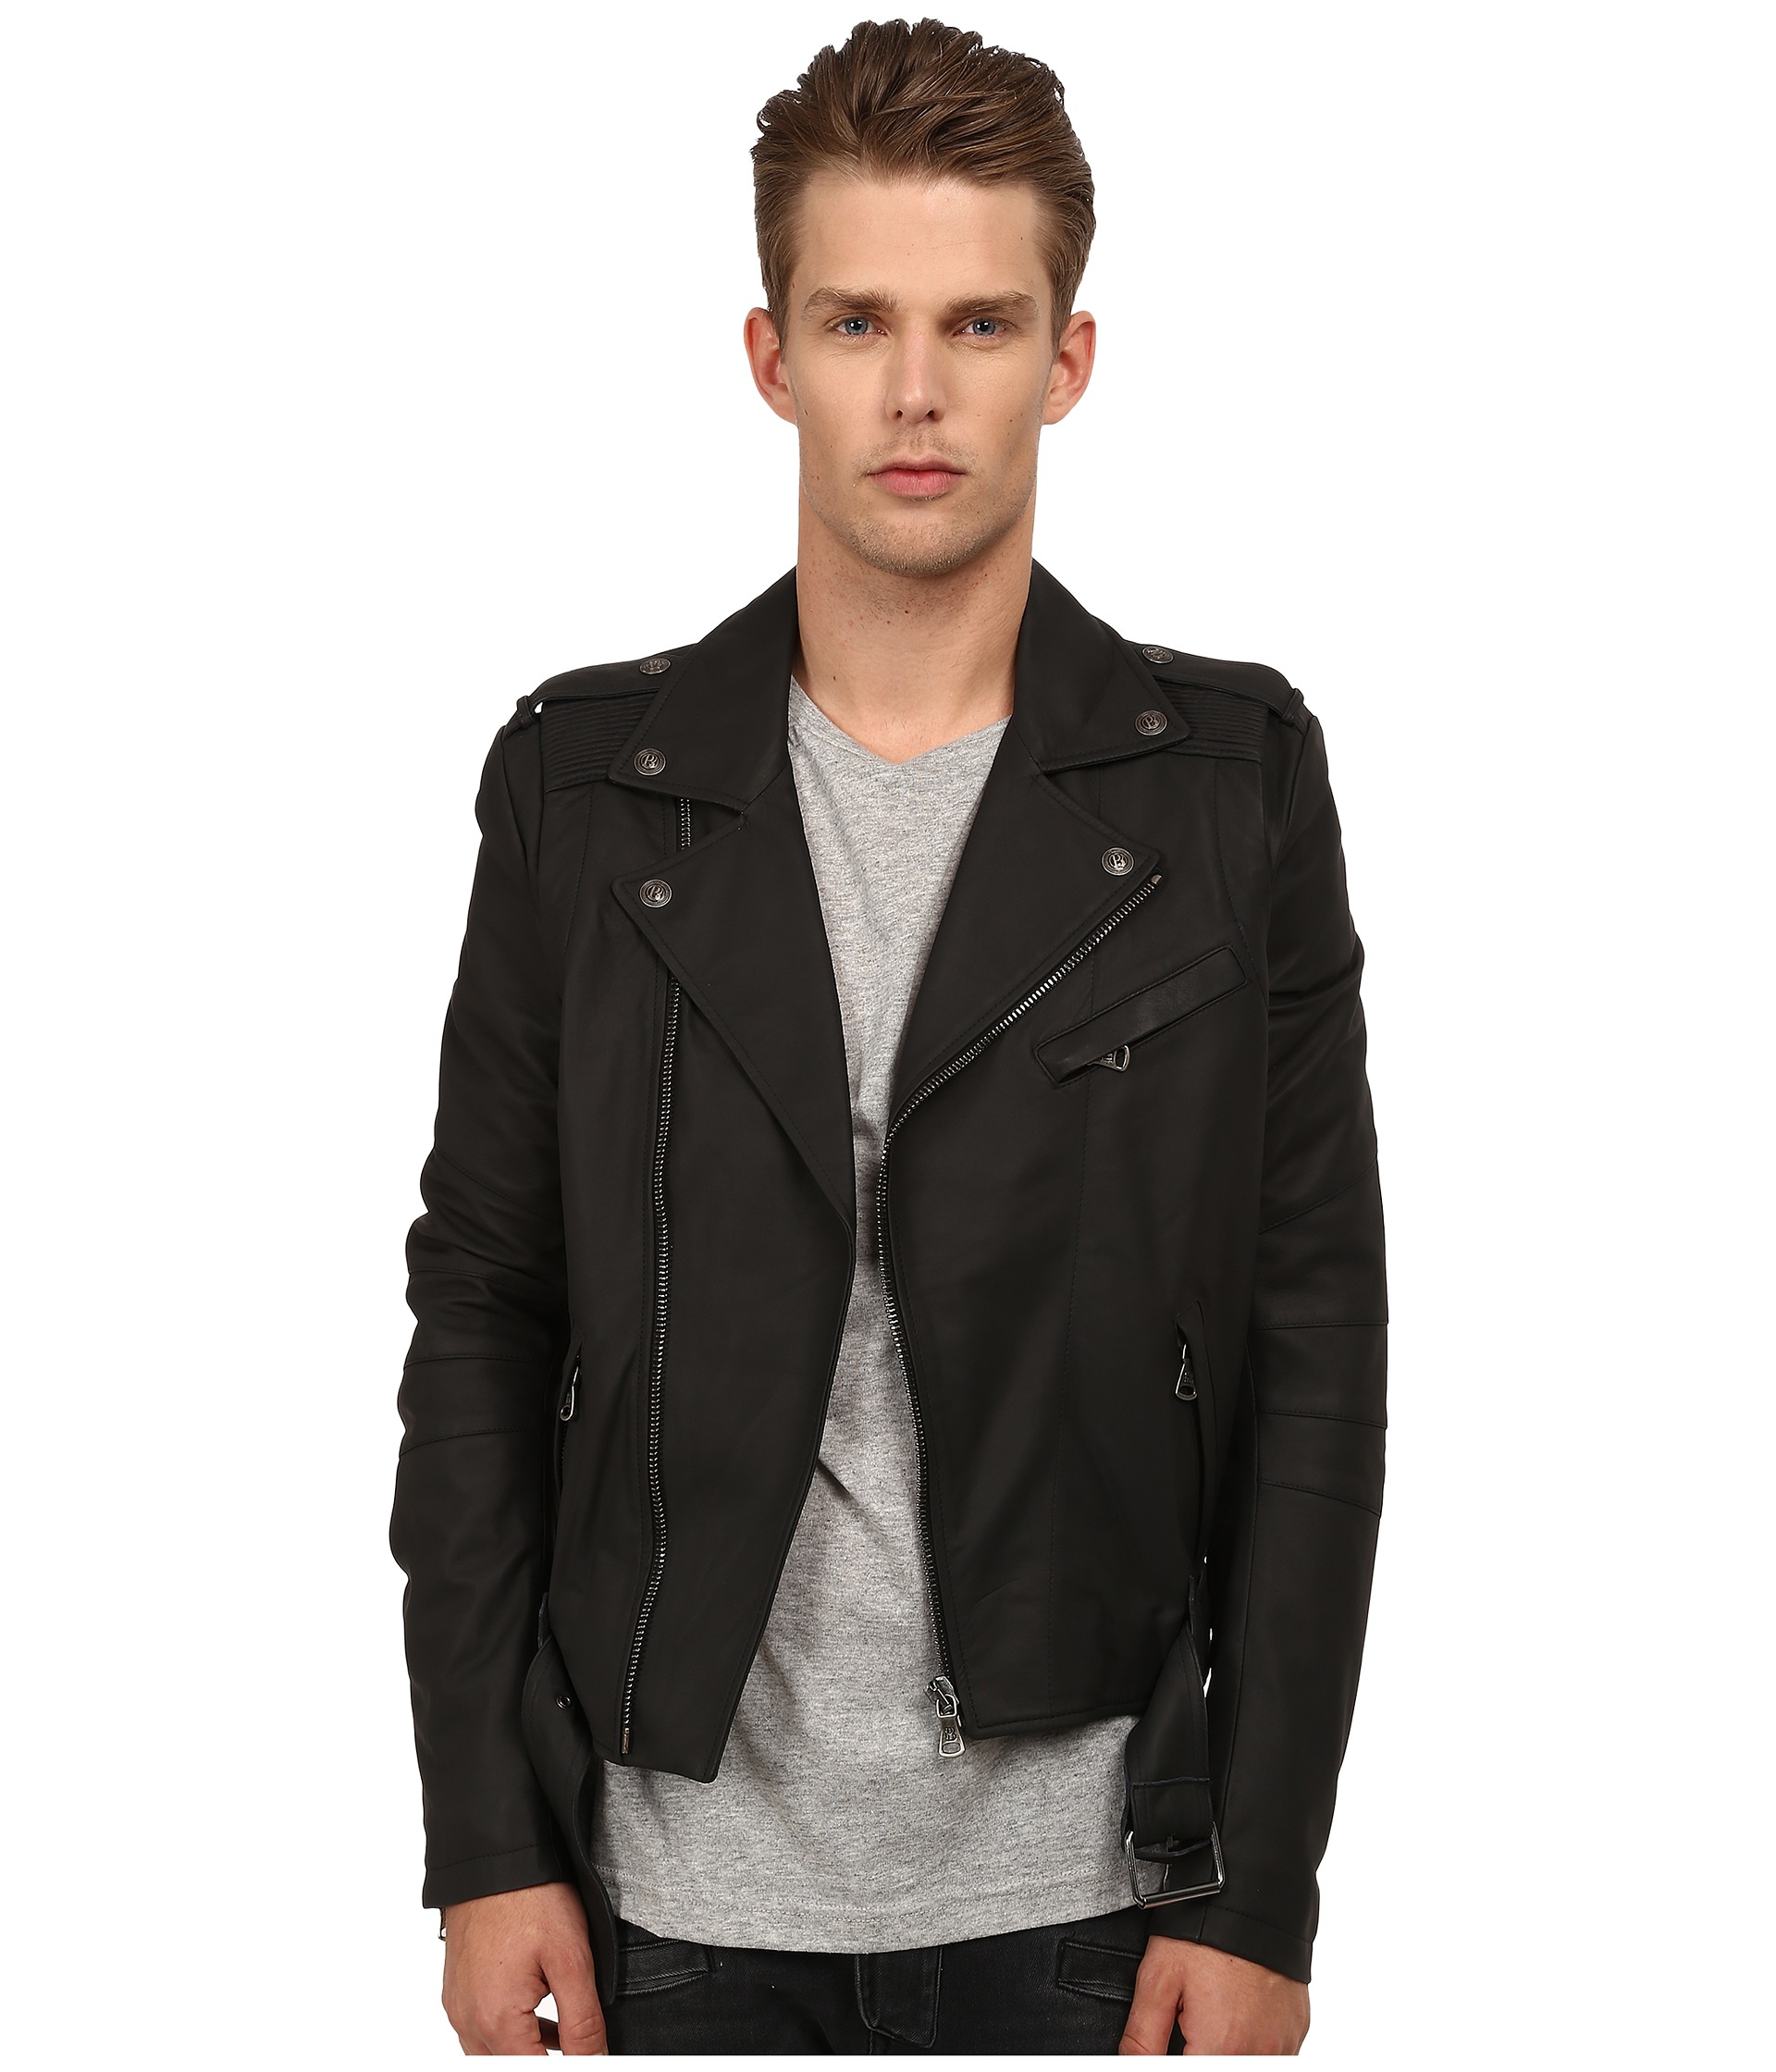 Balmain Leather Jacket | Balmain Dresses | Balmain Paris T Shirt